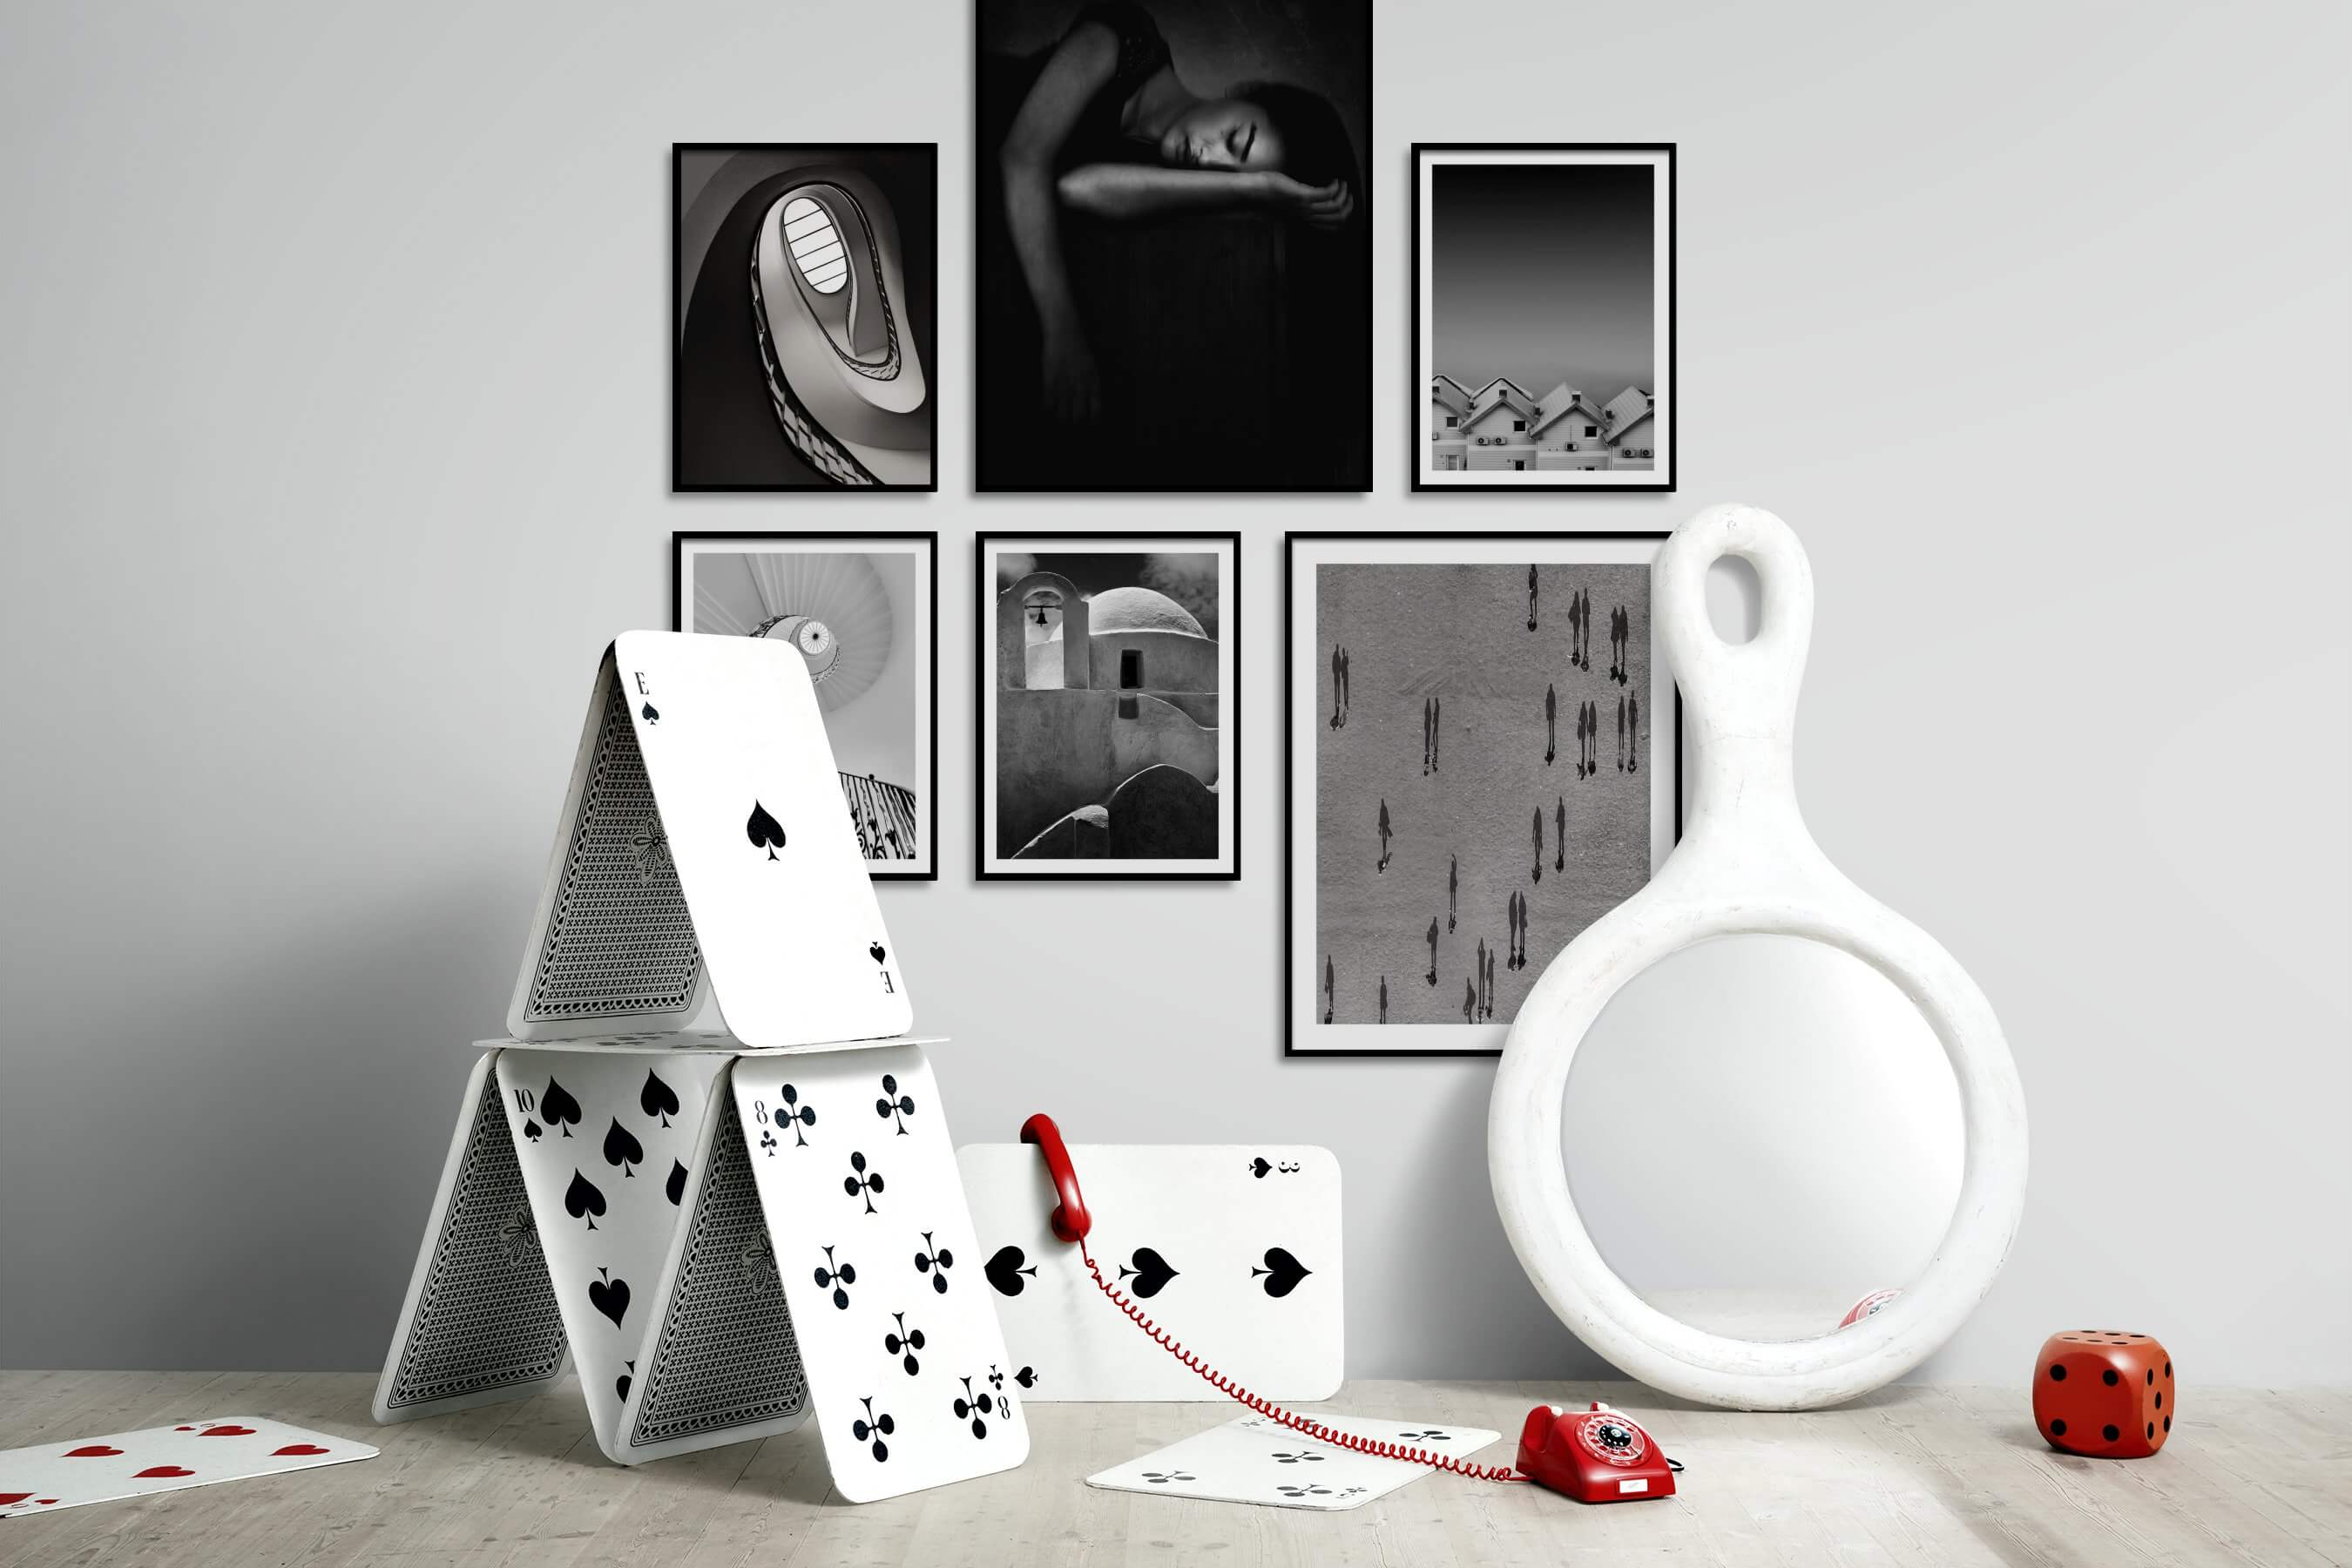 Gallery wall idea with six framed pictures arranged on a wall depicting Black & White, For the Moderate, Fashion & Beauty, Dark Tones, and For the Minimalist